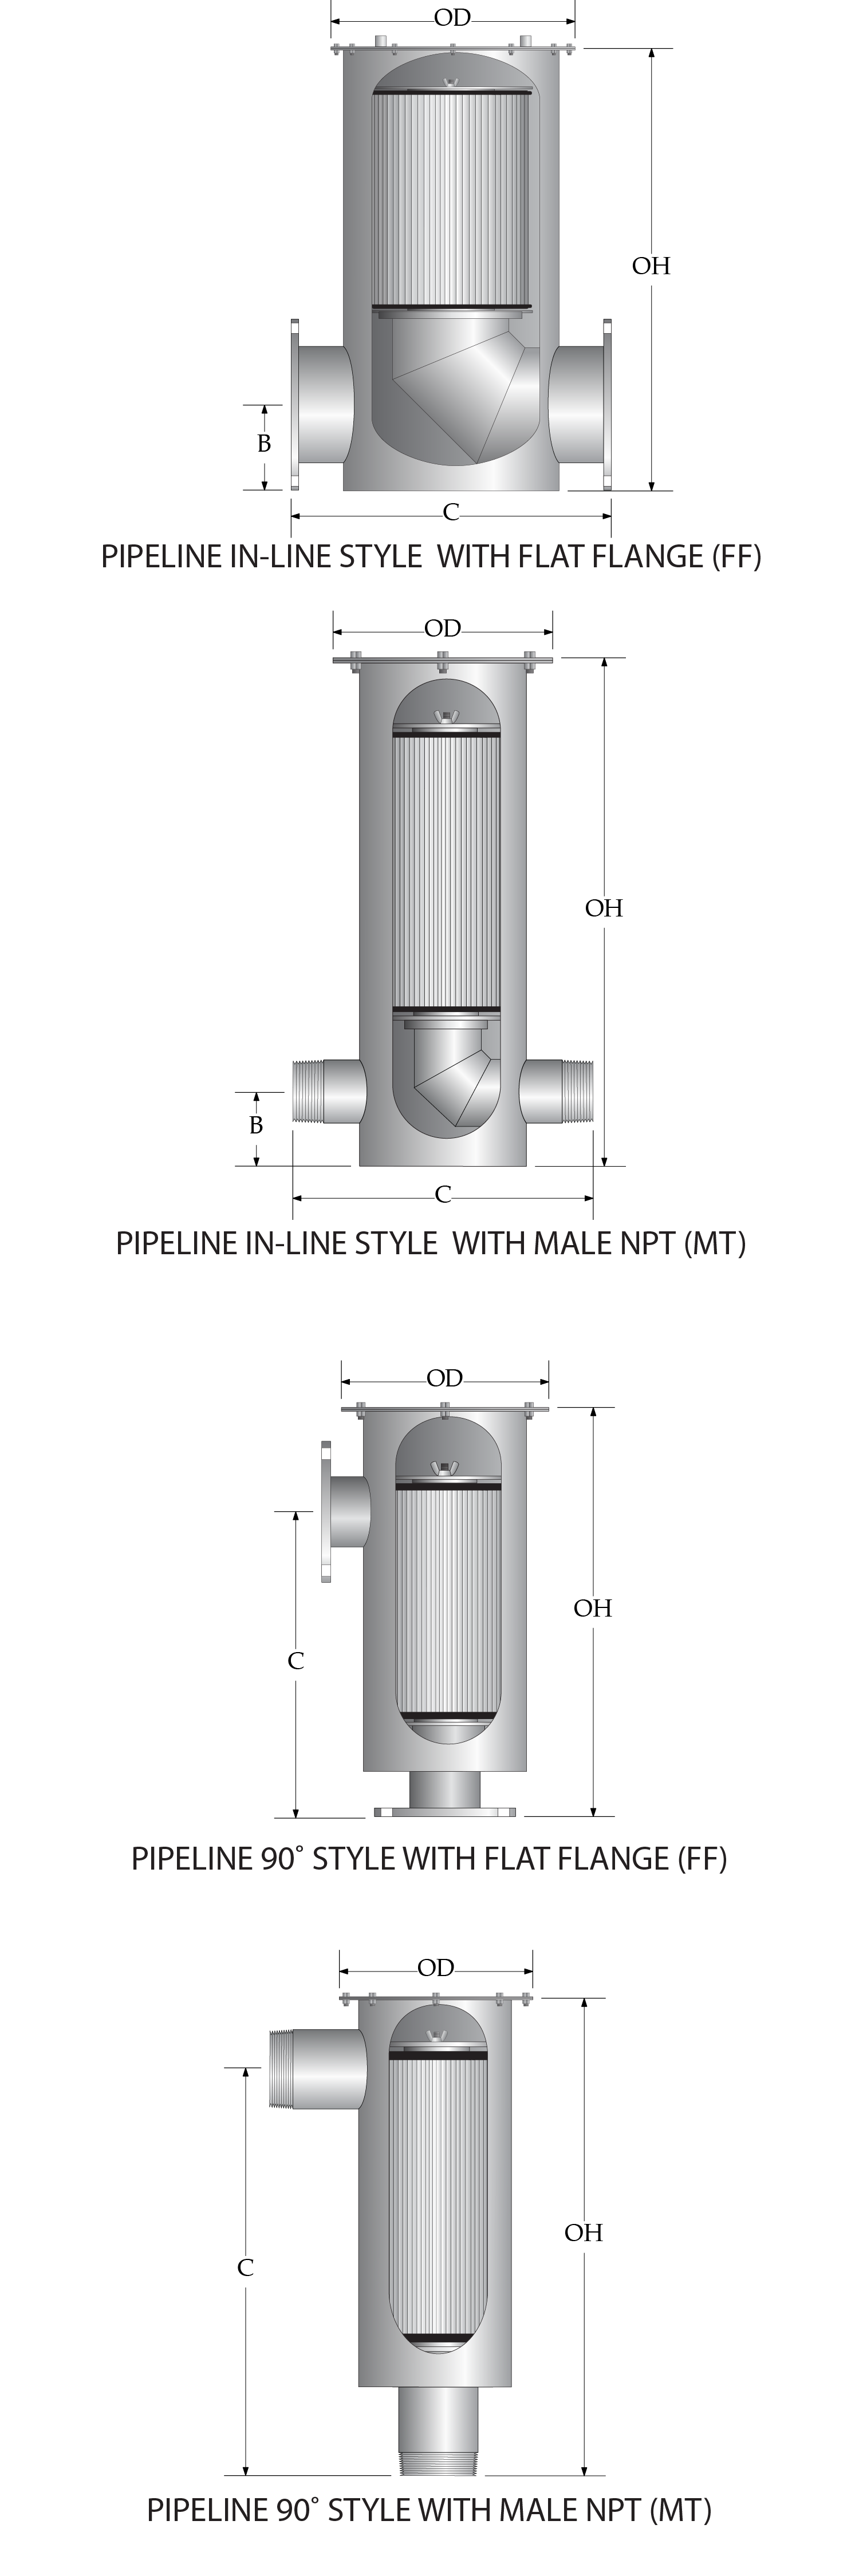 pipeline_drawings-01